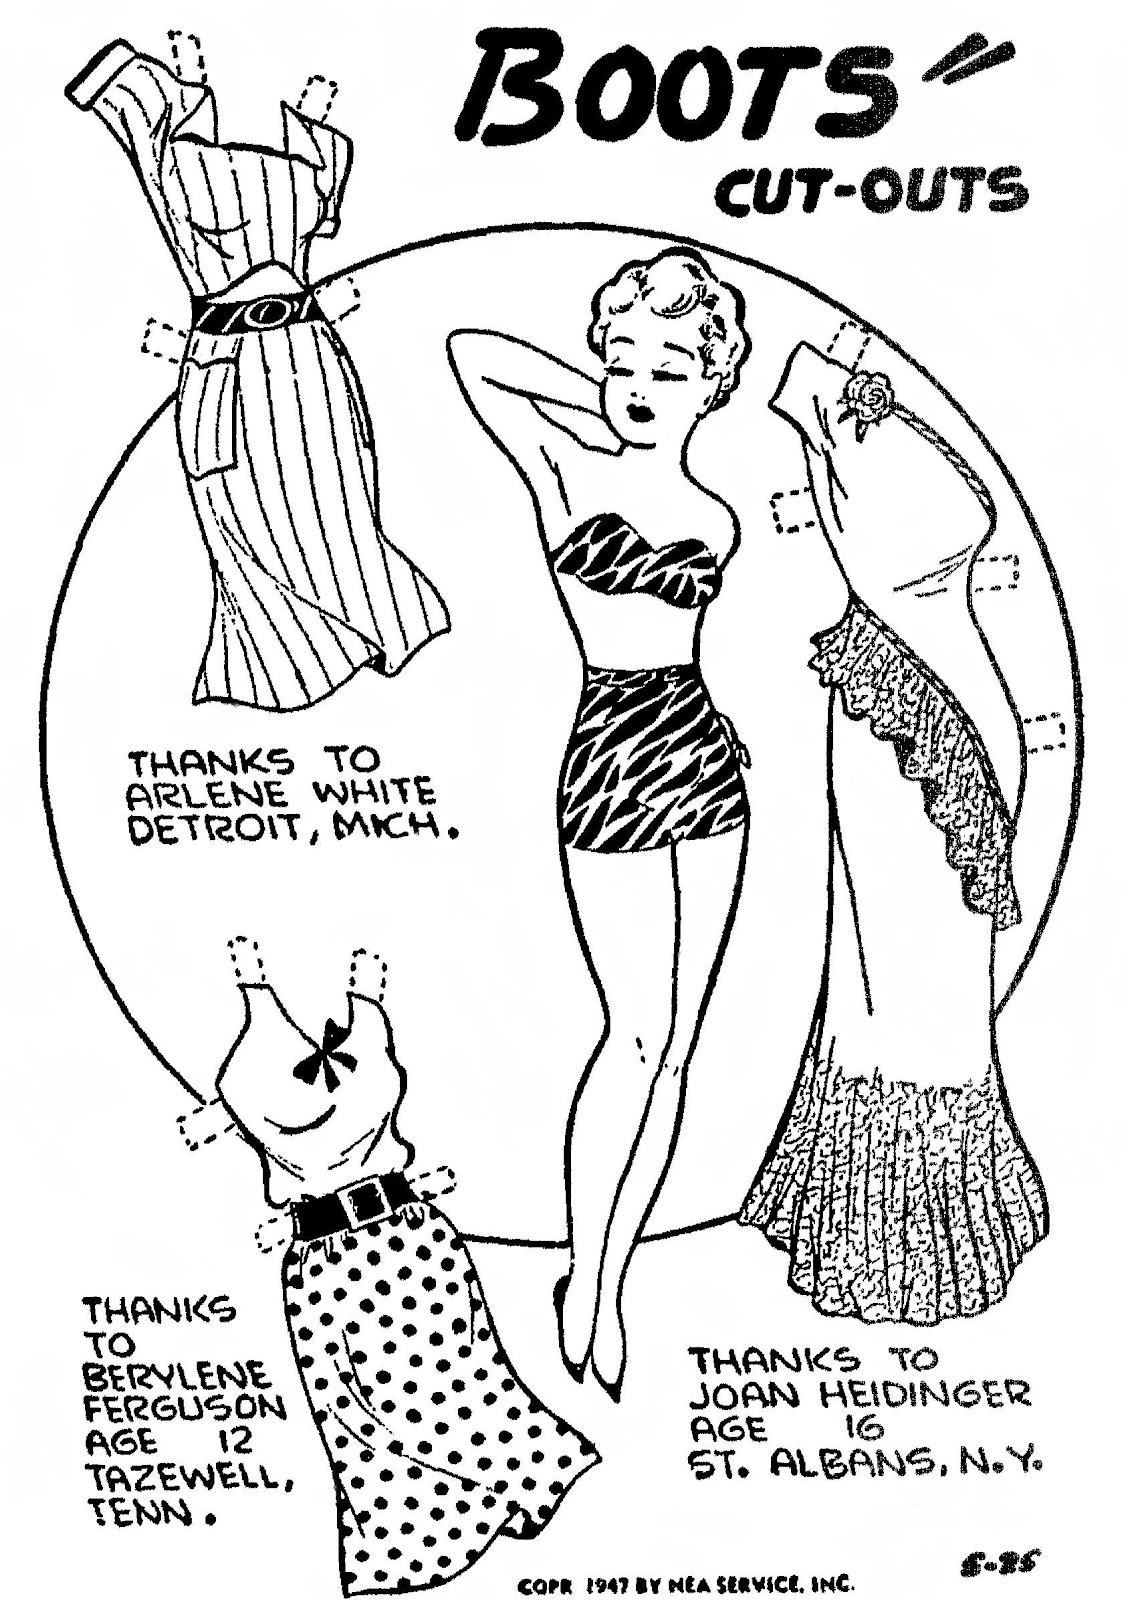 Mostly Paper Dolls: Pretty Miss BOOTS From 1947